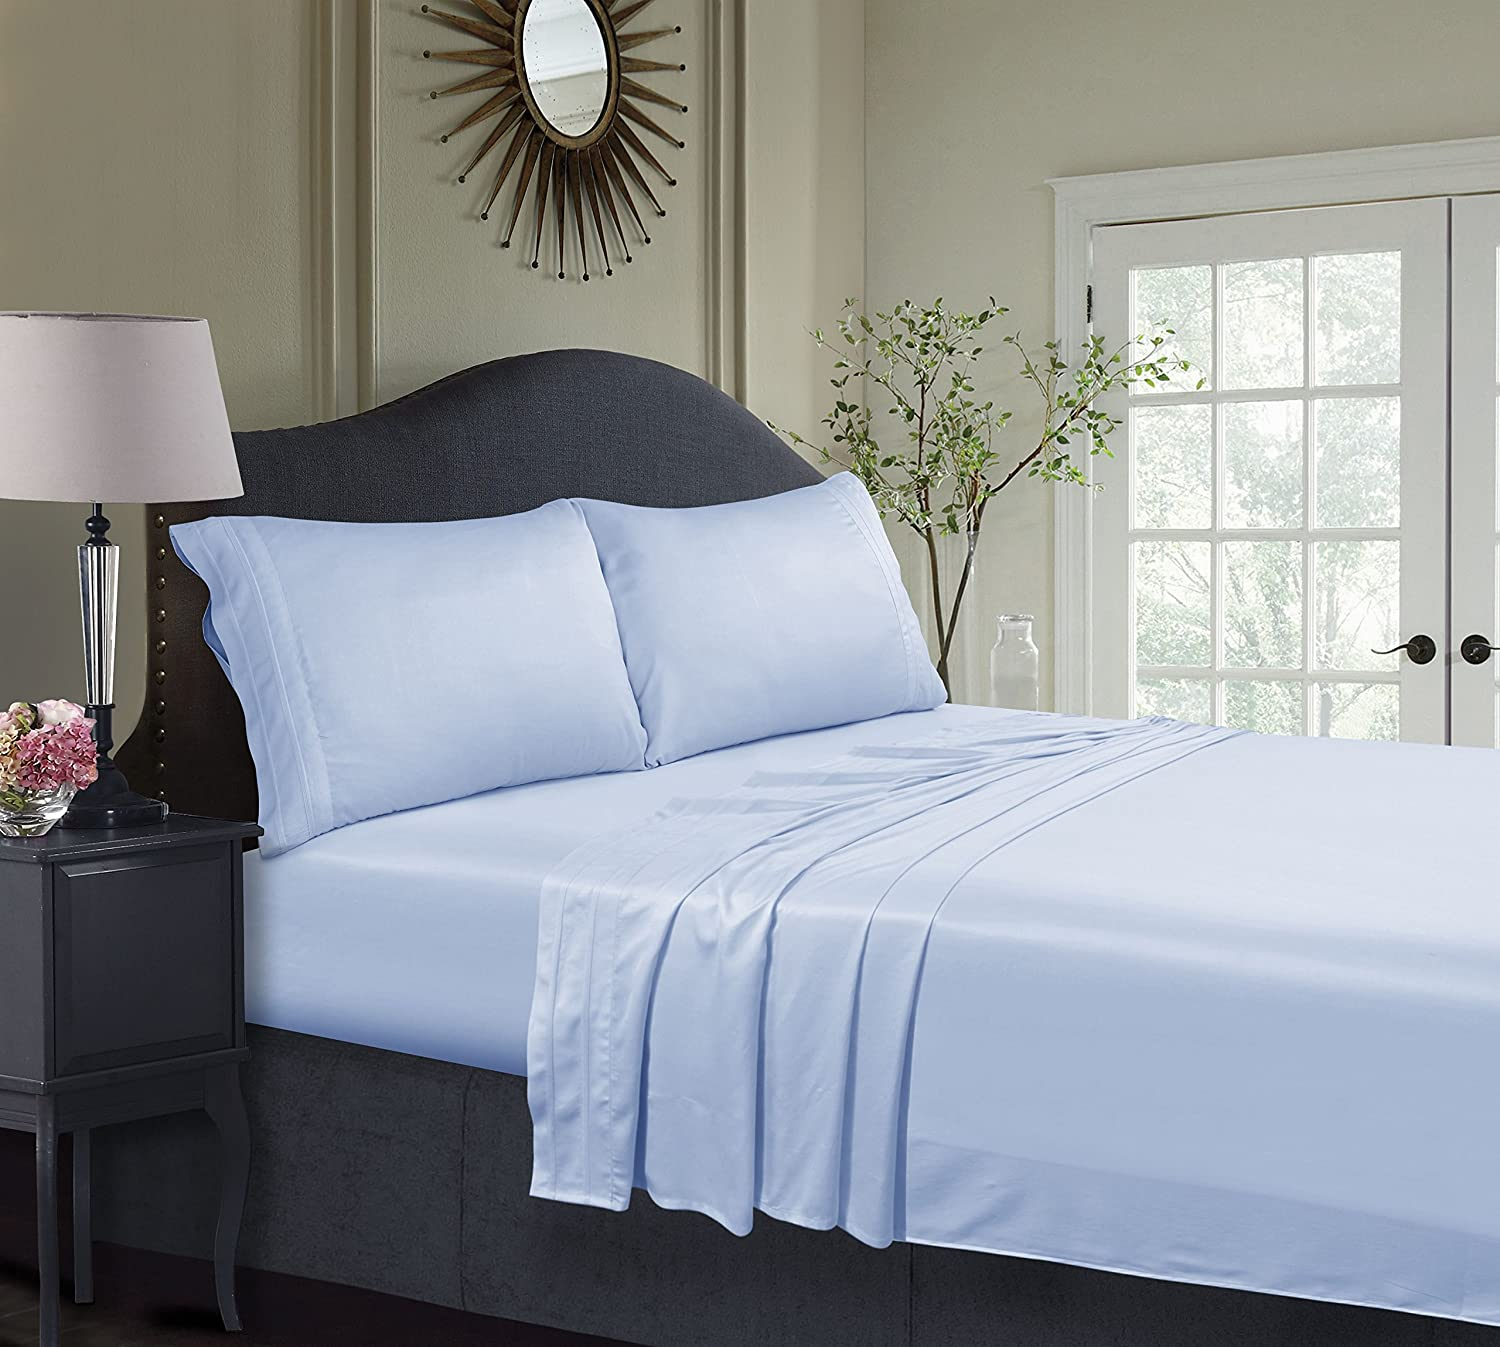 Tribeca Living BAMB300SSQUBL 300 TC Rayon from Bamboo Deep Pocket Sheet Set, Queen, Spa Blue